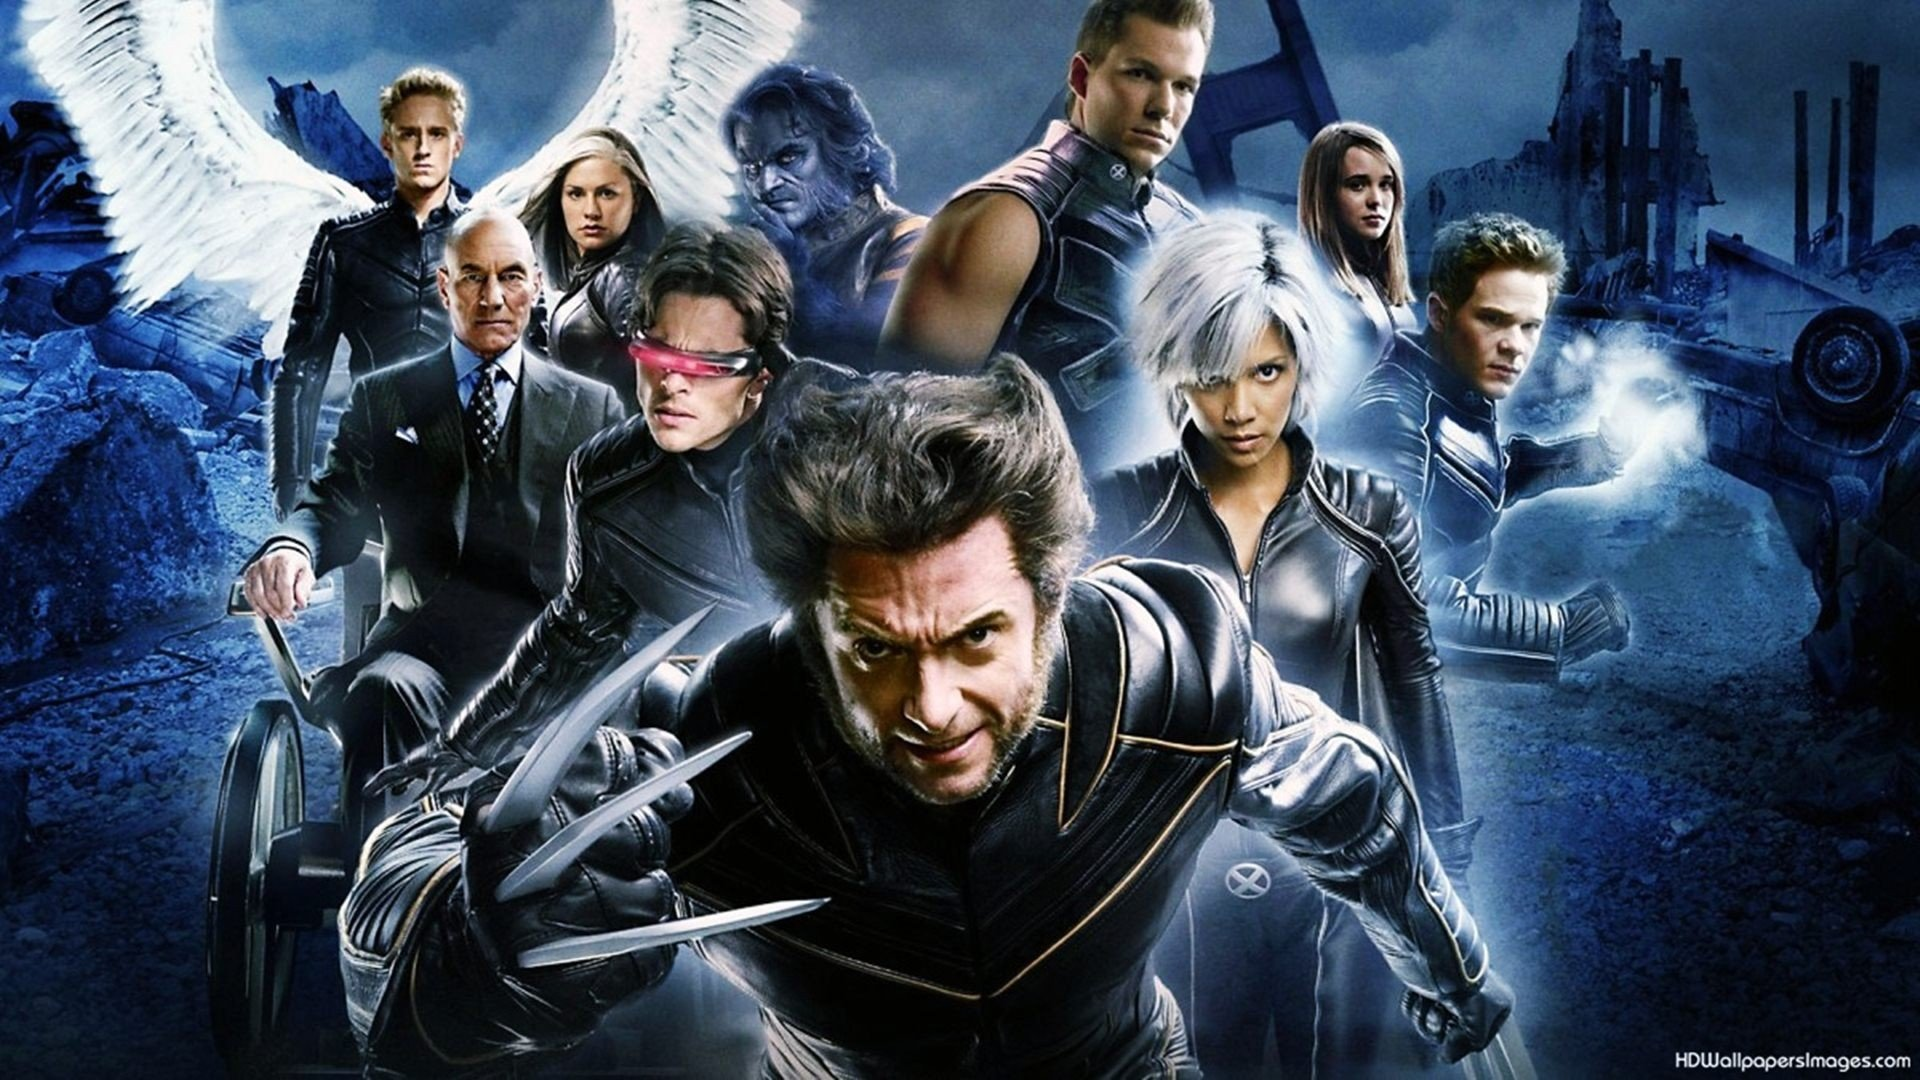 X MEN Days Future Past Action Adventure Fantasy Movie Film Comics Marvel Xmen Men 26 Wallpaper